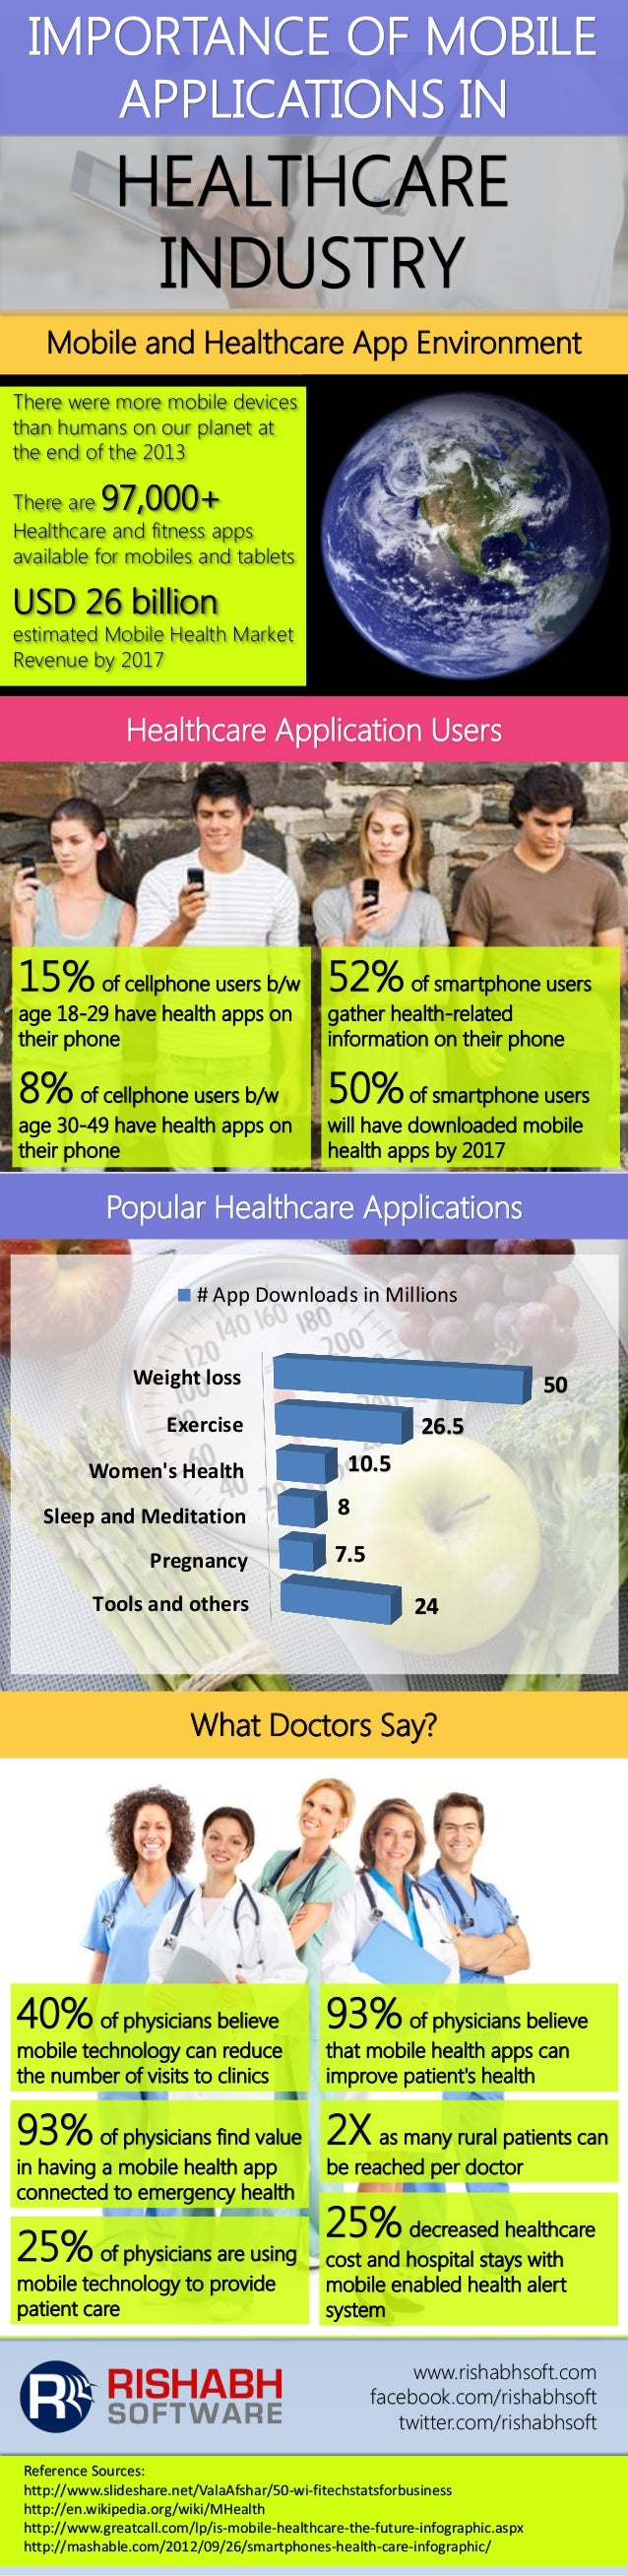 Importance of Mobile Applications in Healthcare Industry [INFOGRAPHIC]